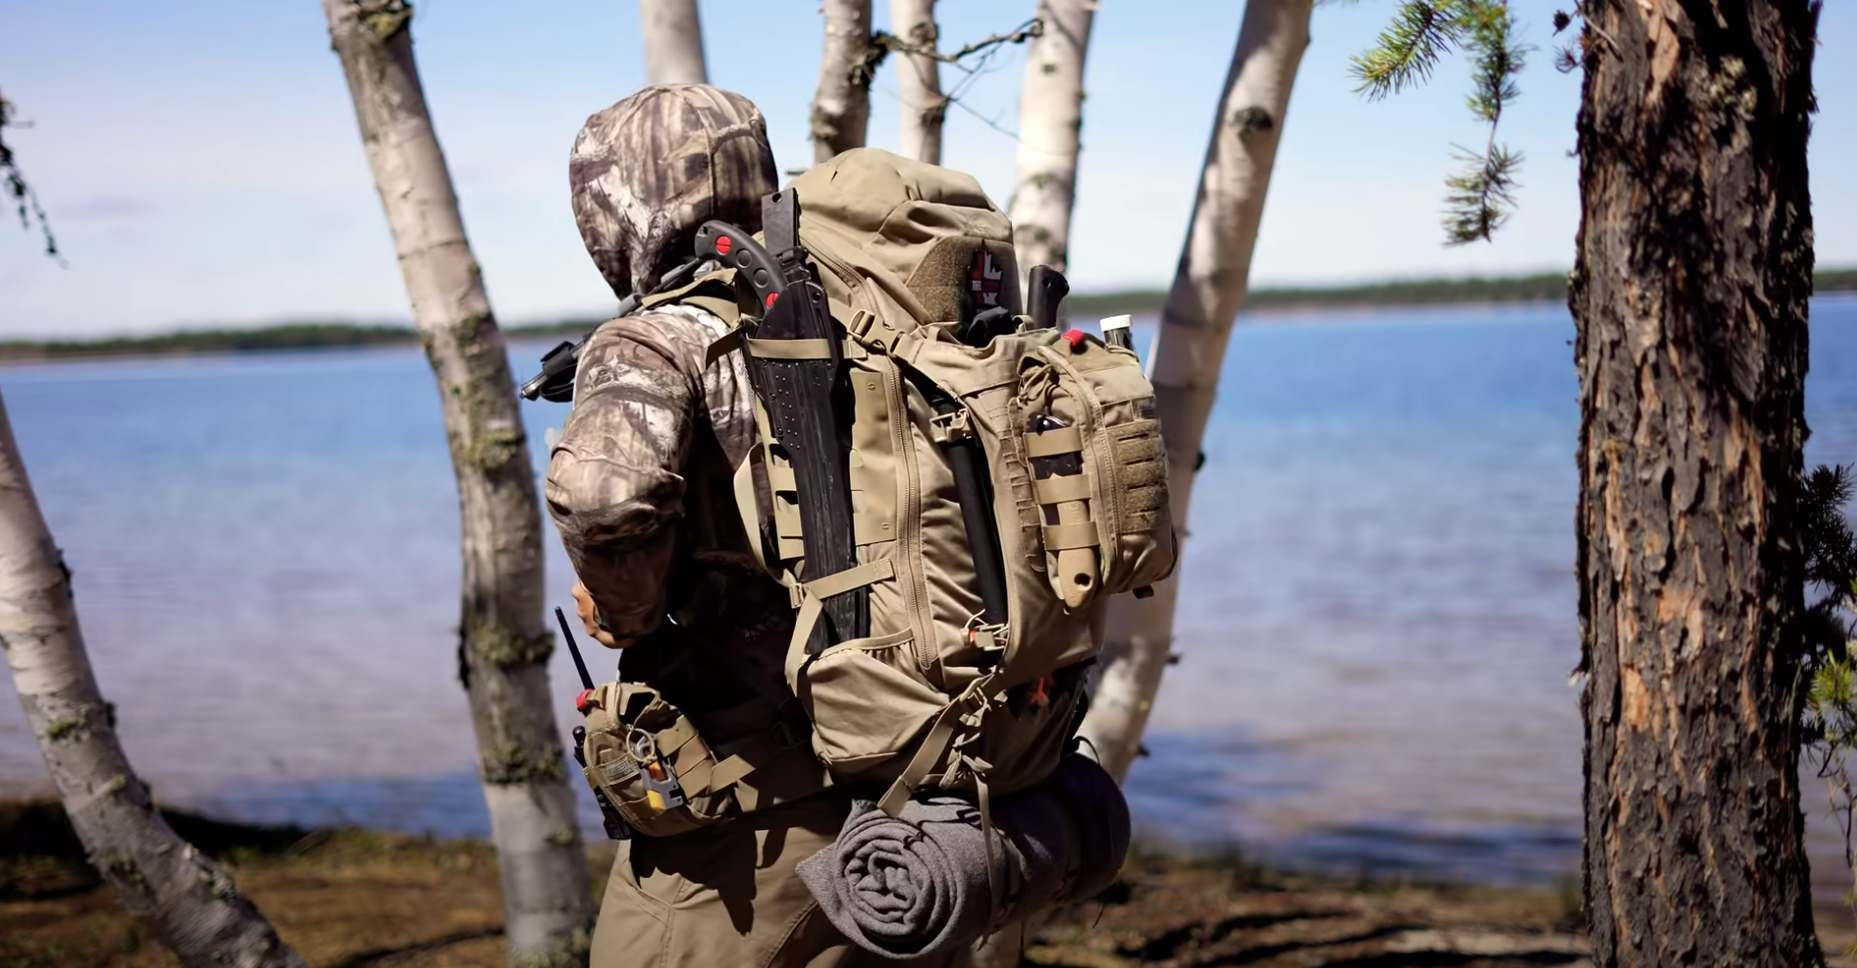 canadian prepper wearing the markhor 45 backpack near a lake